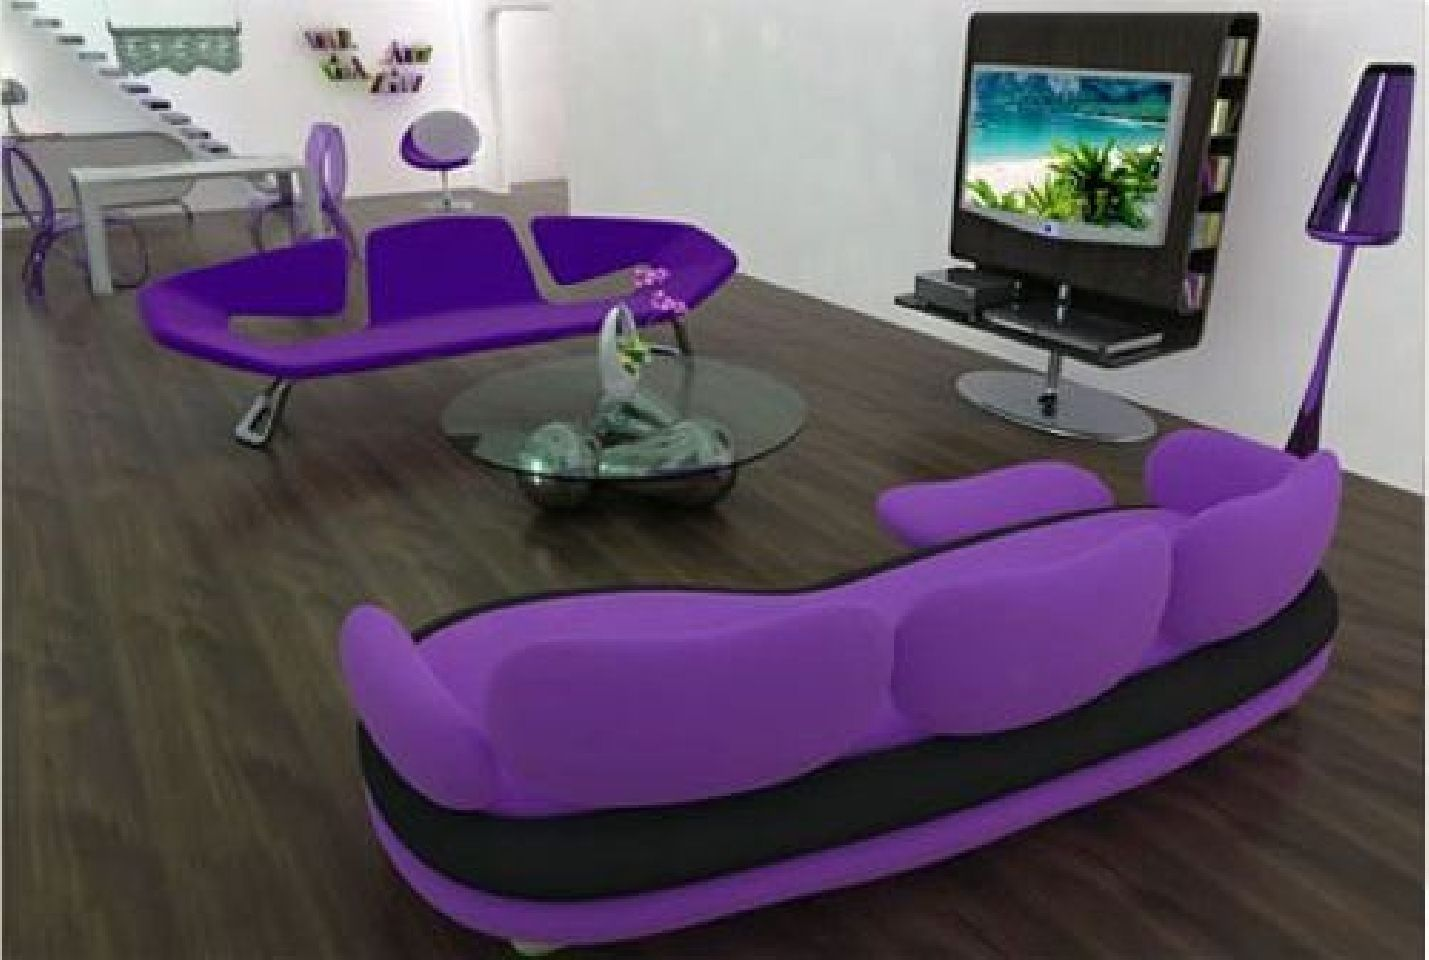 Inspirational Cute Purple Sofa For Fashionable Small Living Room - Cute living room ideas